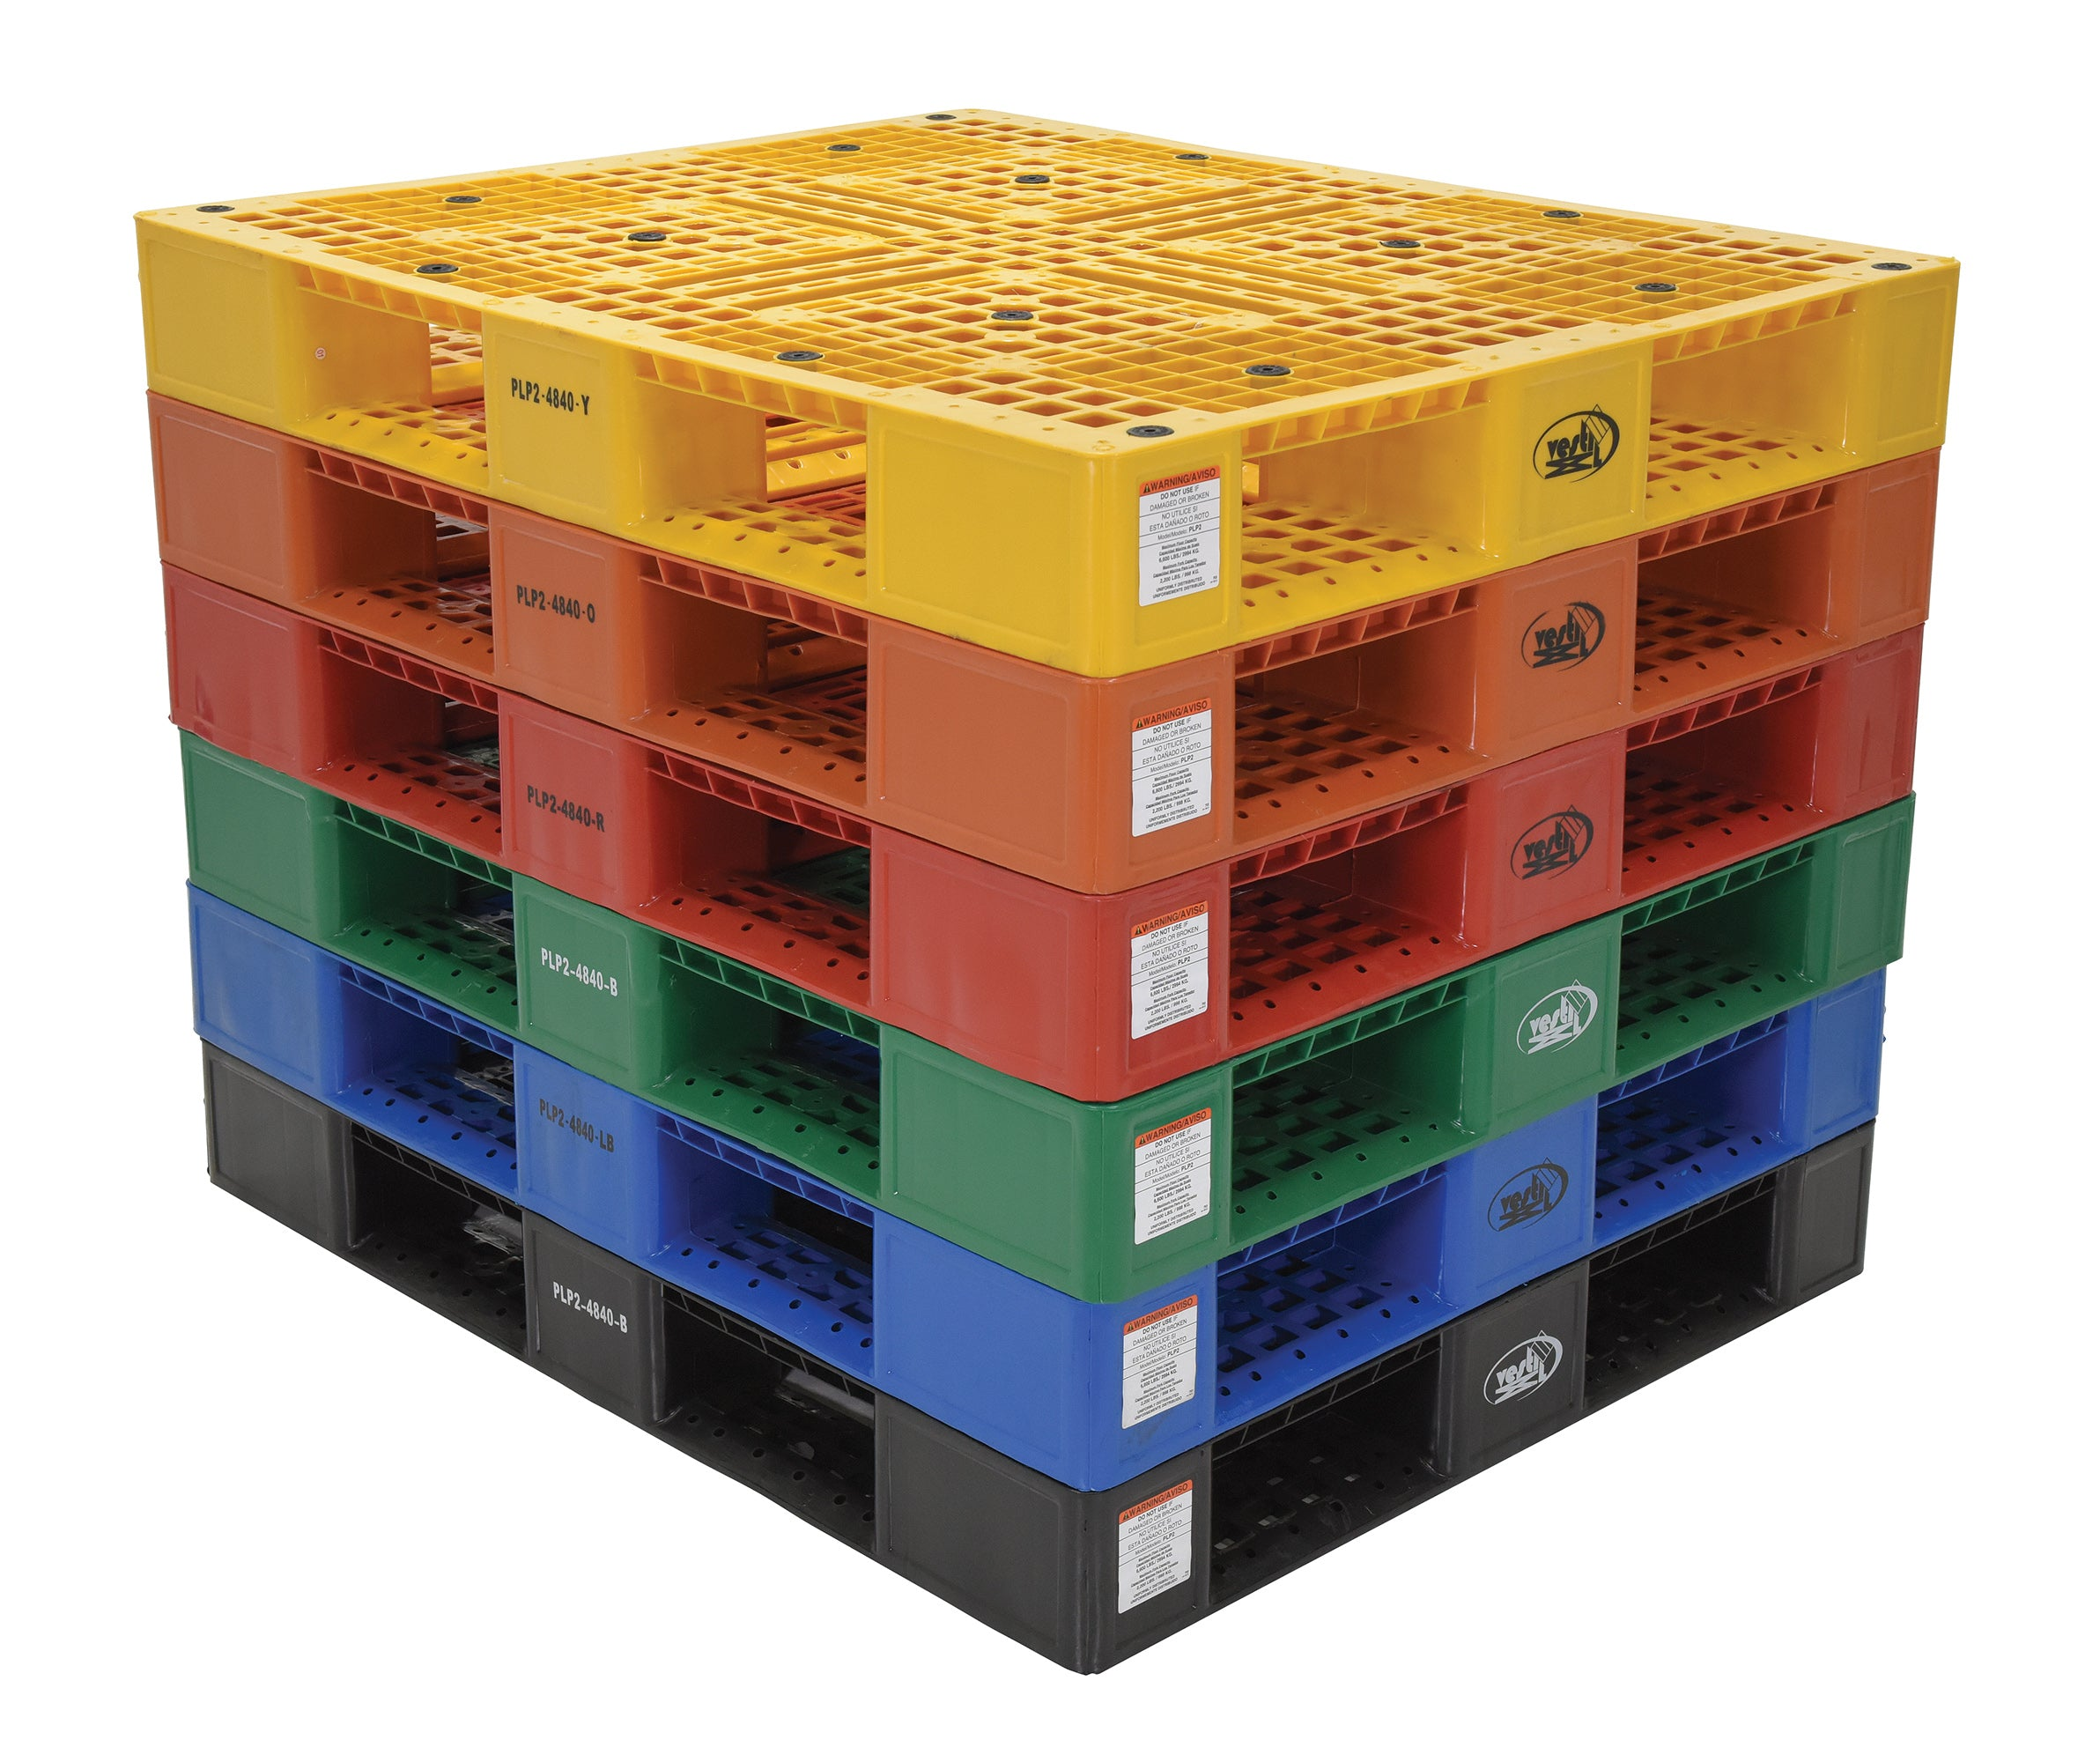 PLP2-4840 Pallet | 48x40 Stackable Pallet